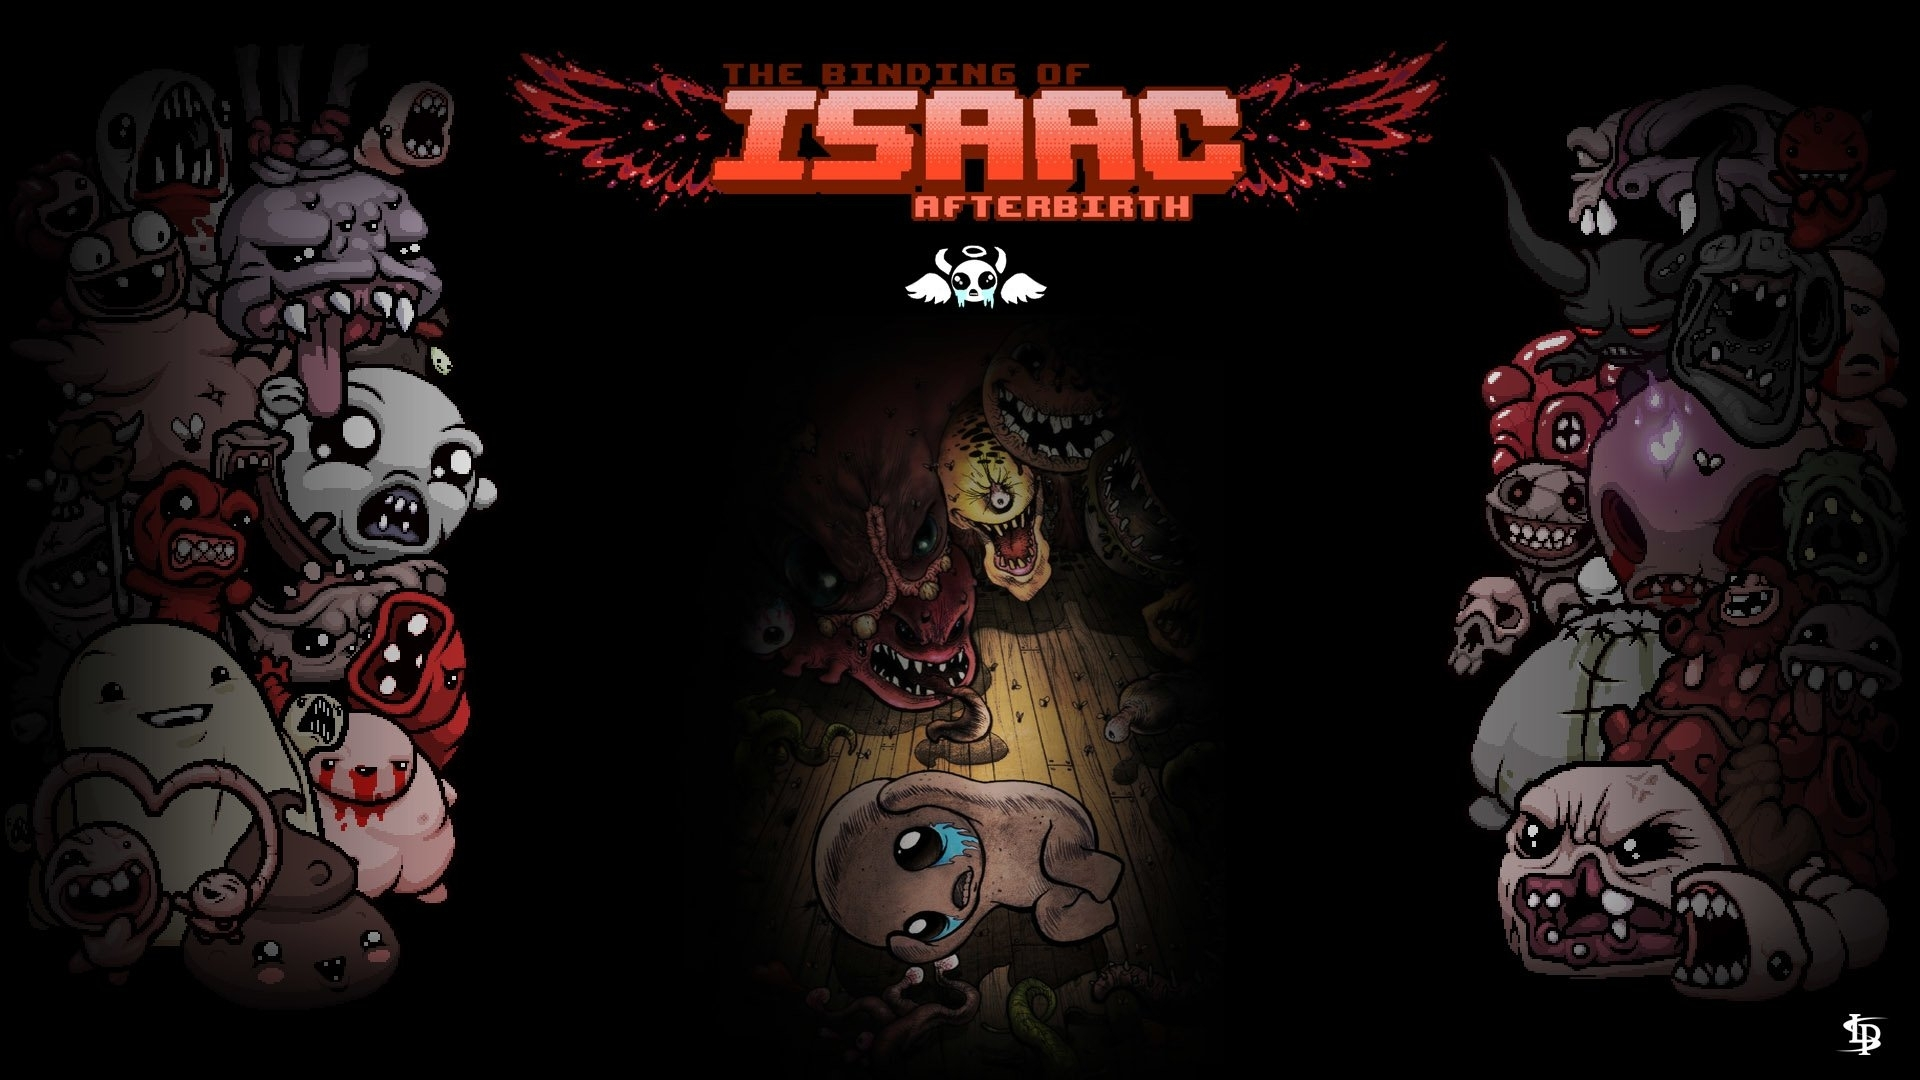 the binding of isaac afterbirth wallpaper full hd fond d'écran and